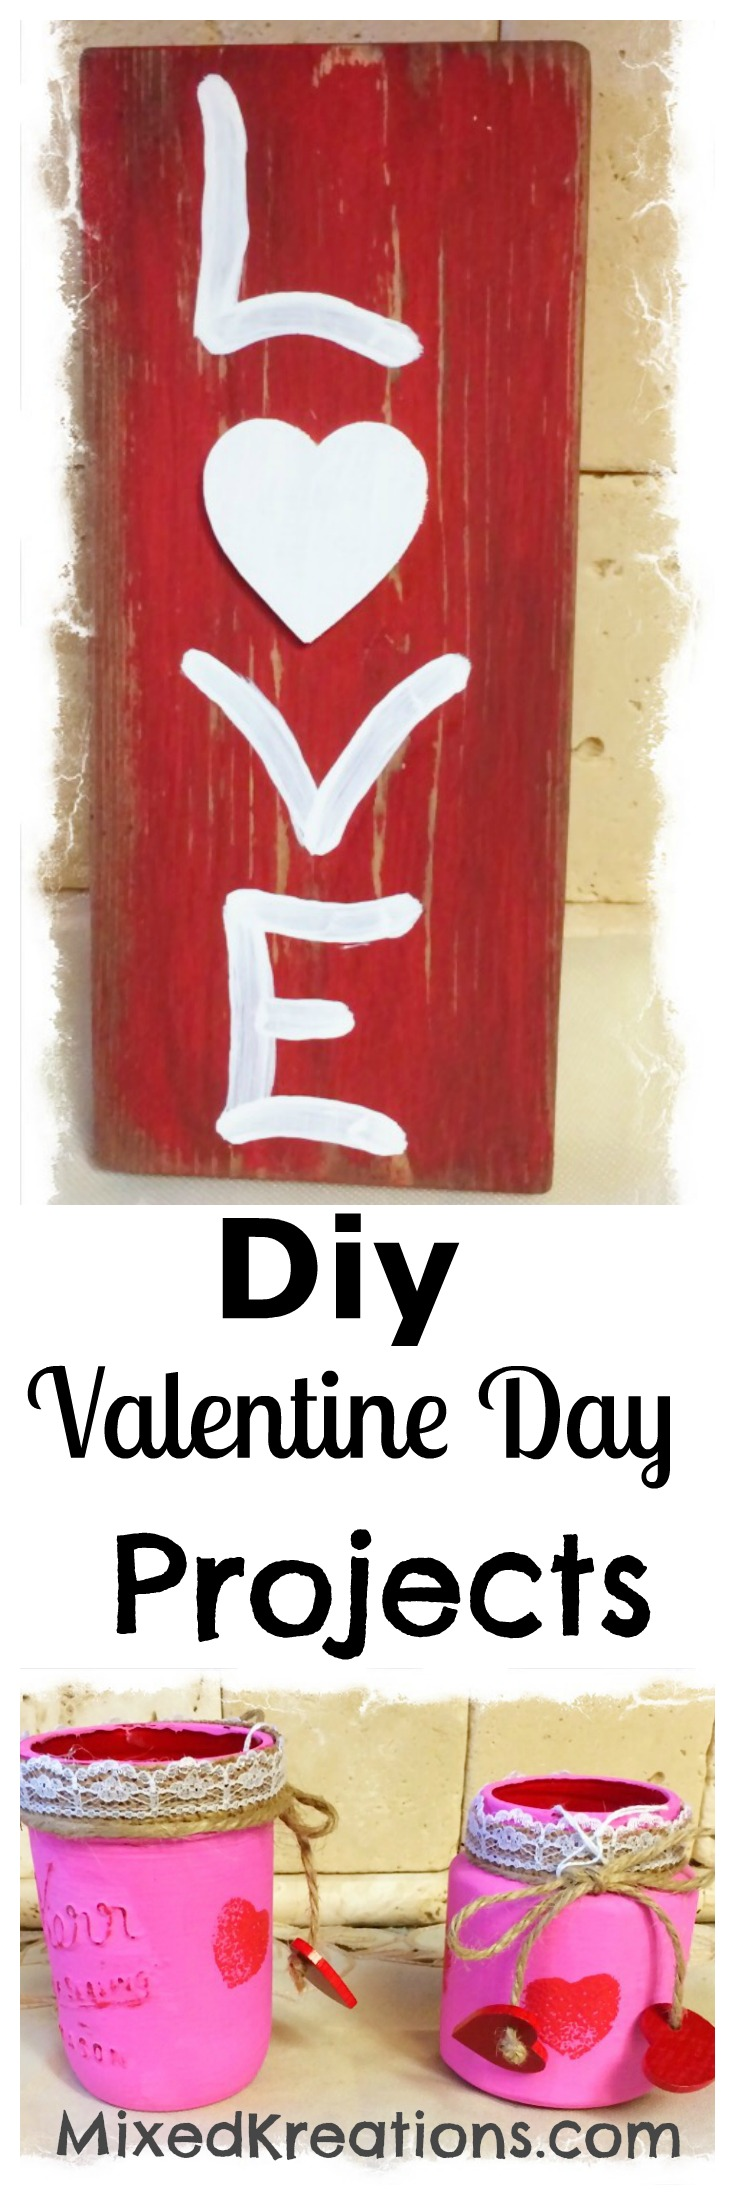 diy valentine projects pinnable